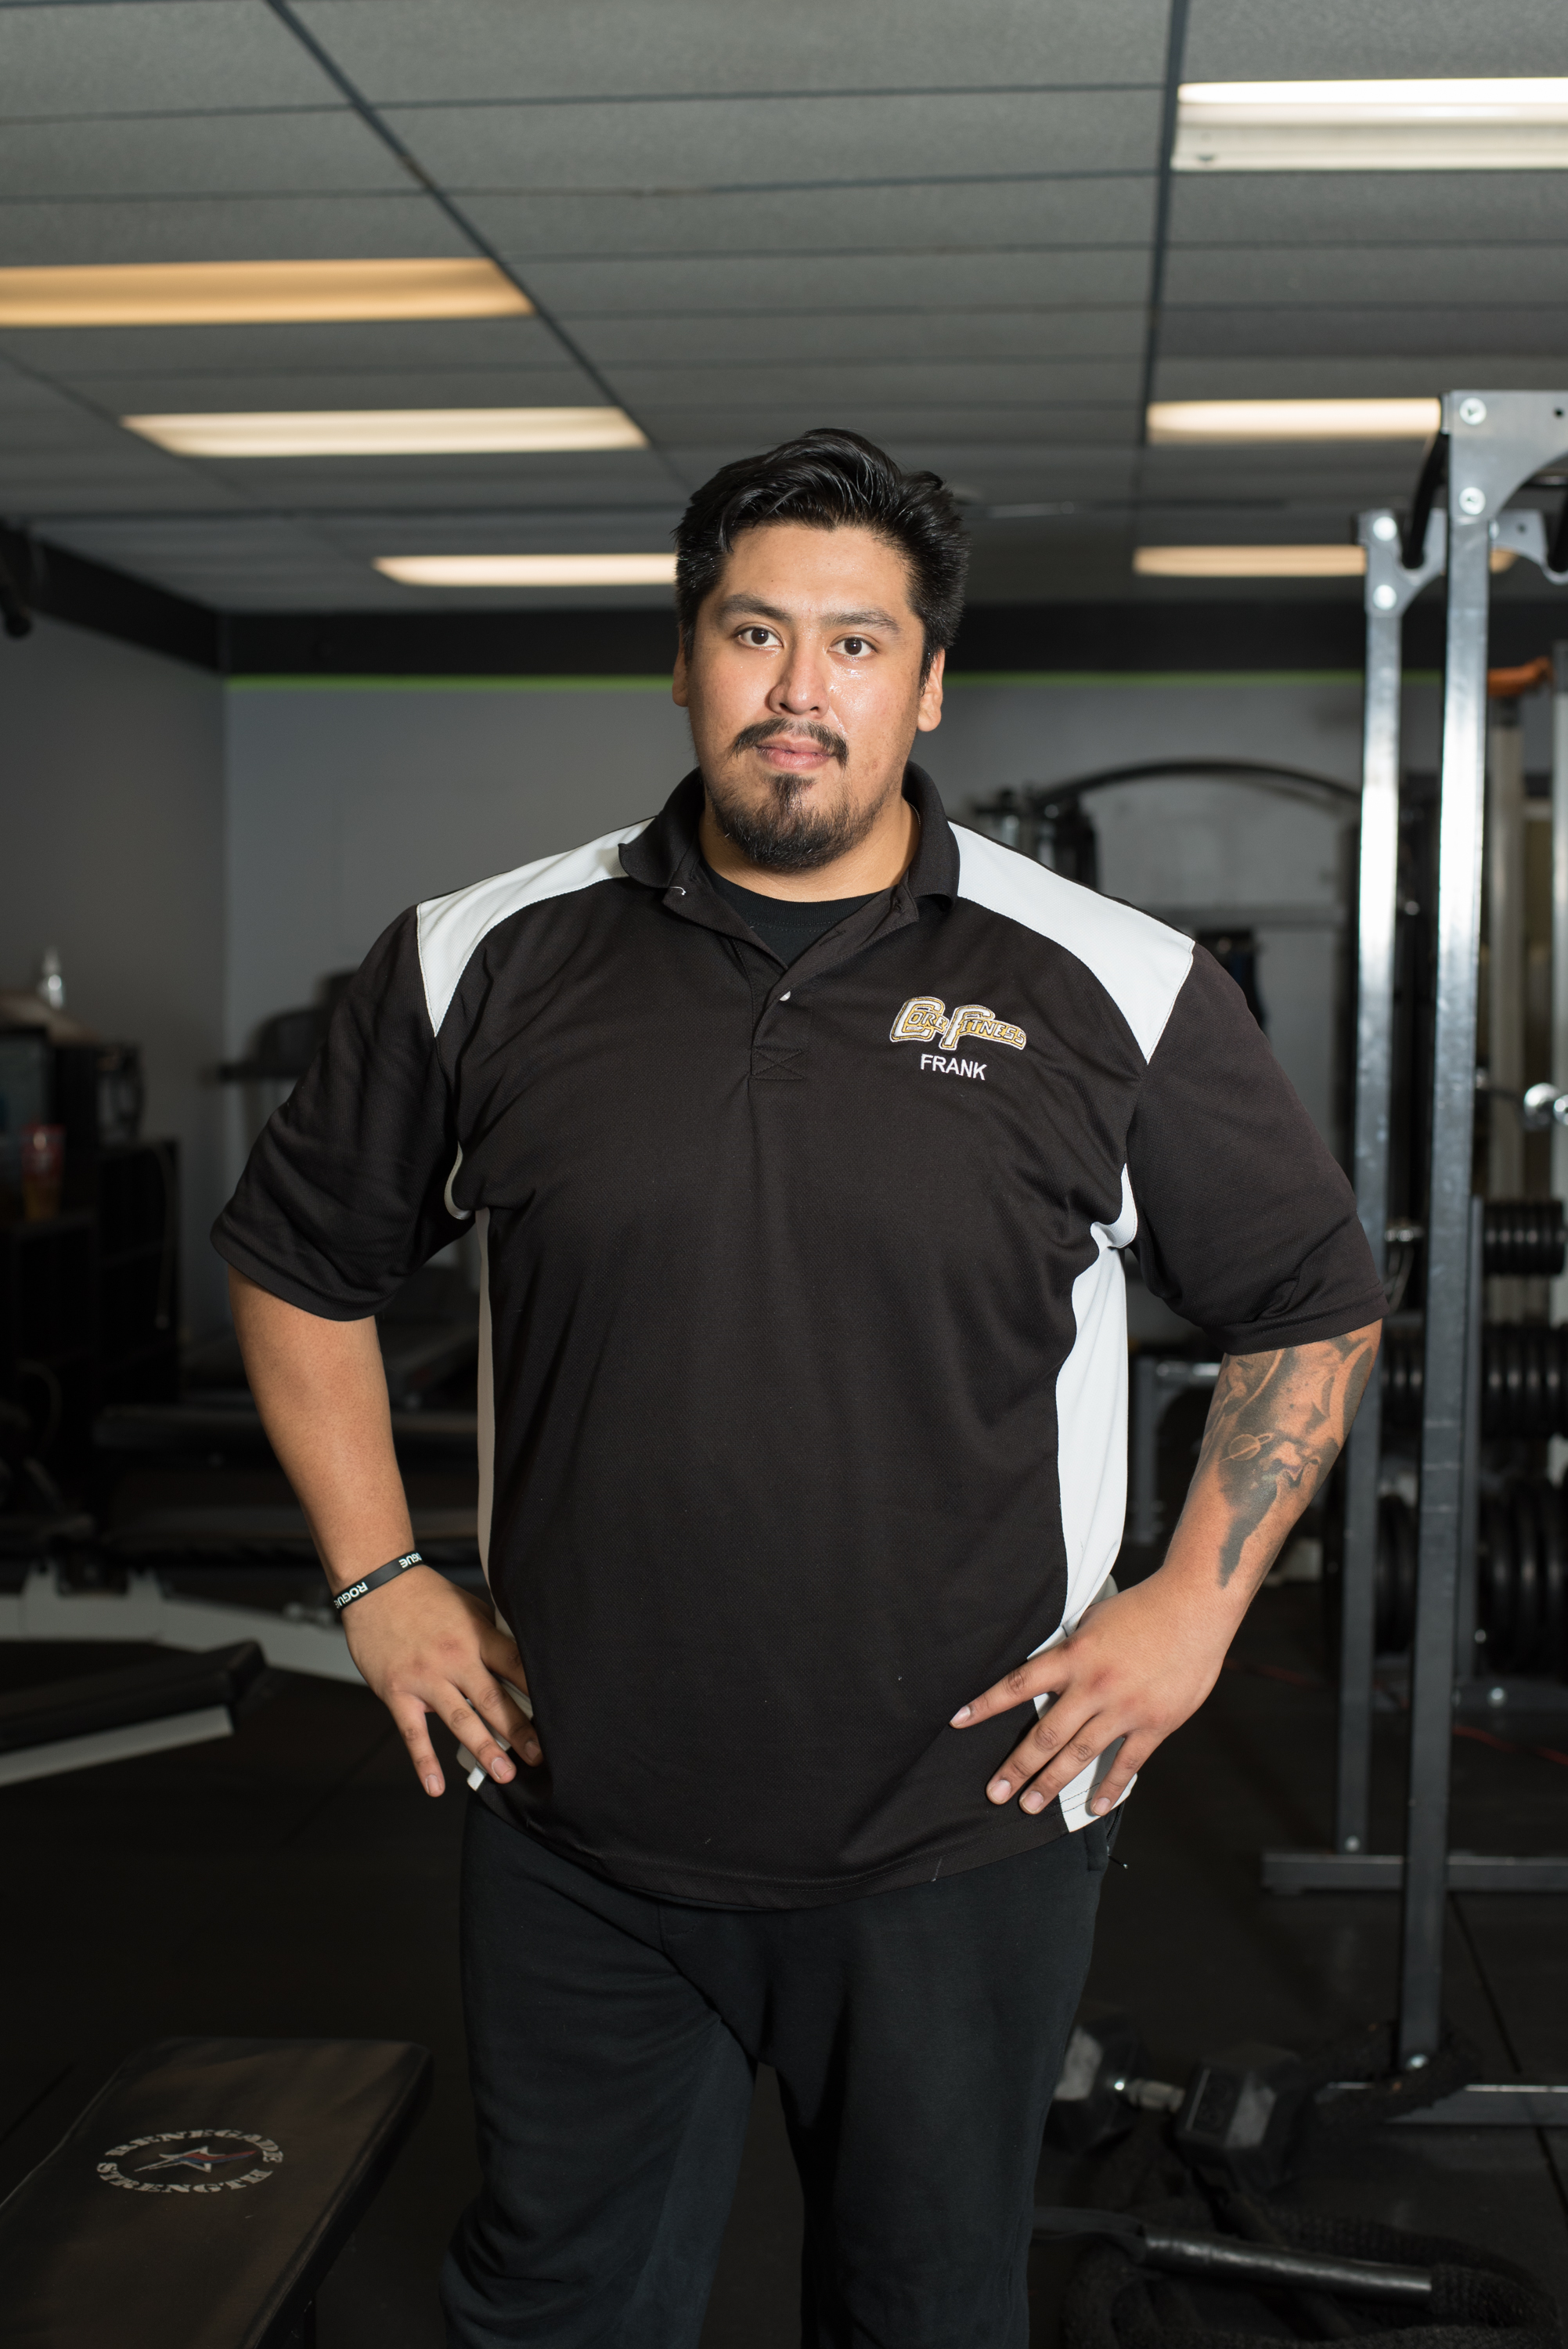 Frank May: Co Owner and Personal Trainer at Core Fitness Dallas